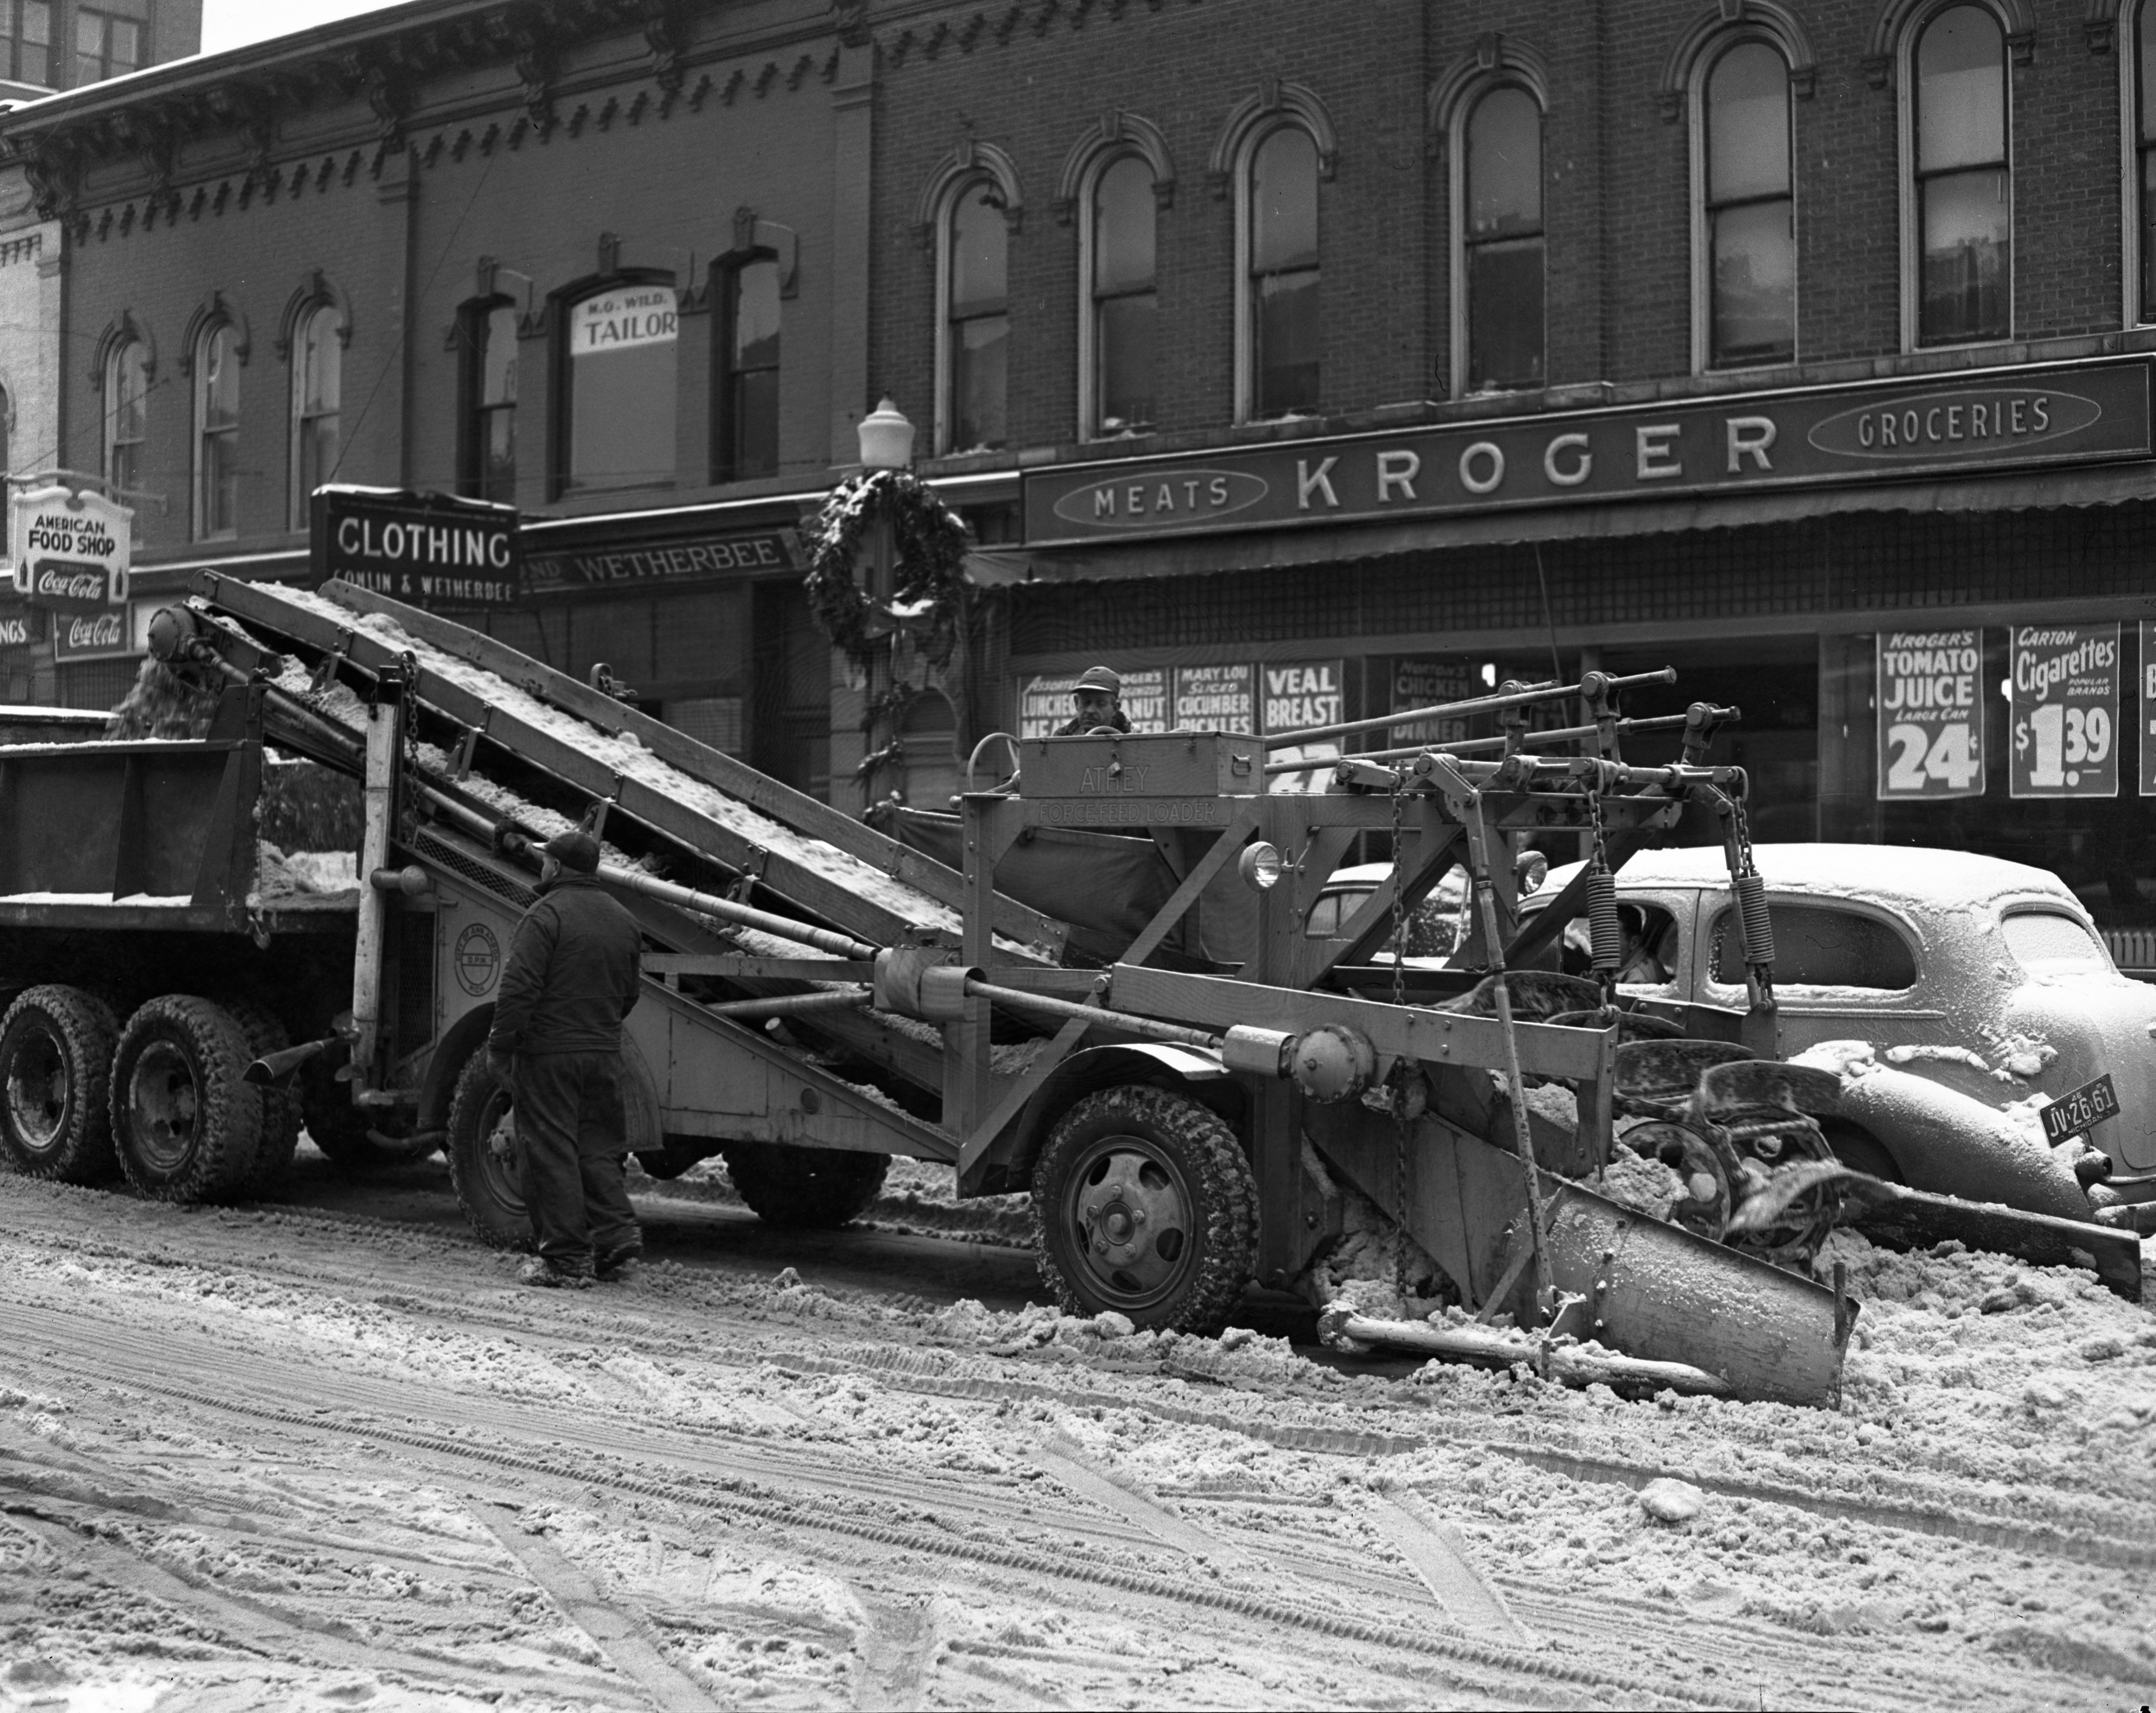 News Snow Removal Apparatus on Washington Street, January 1947 image